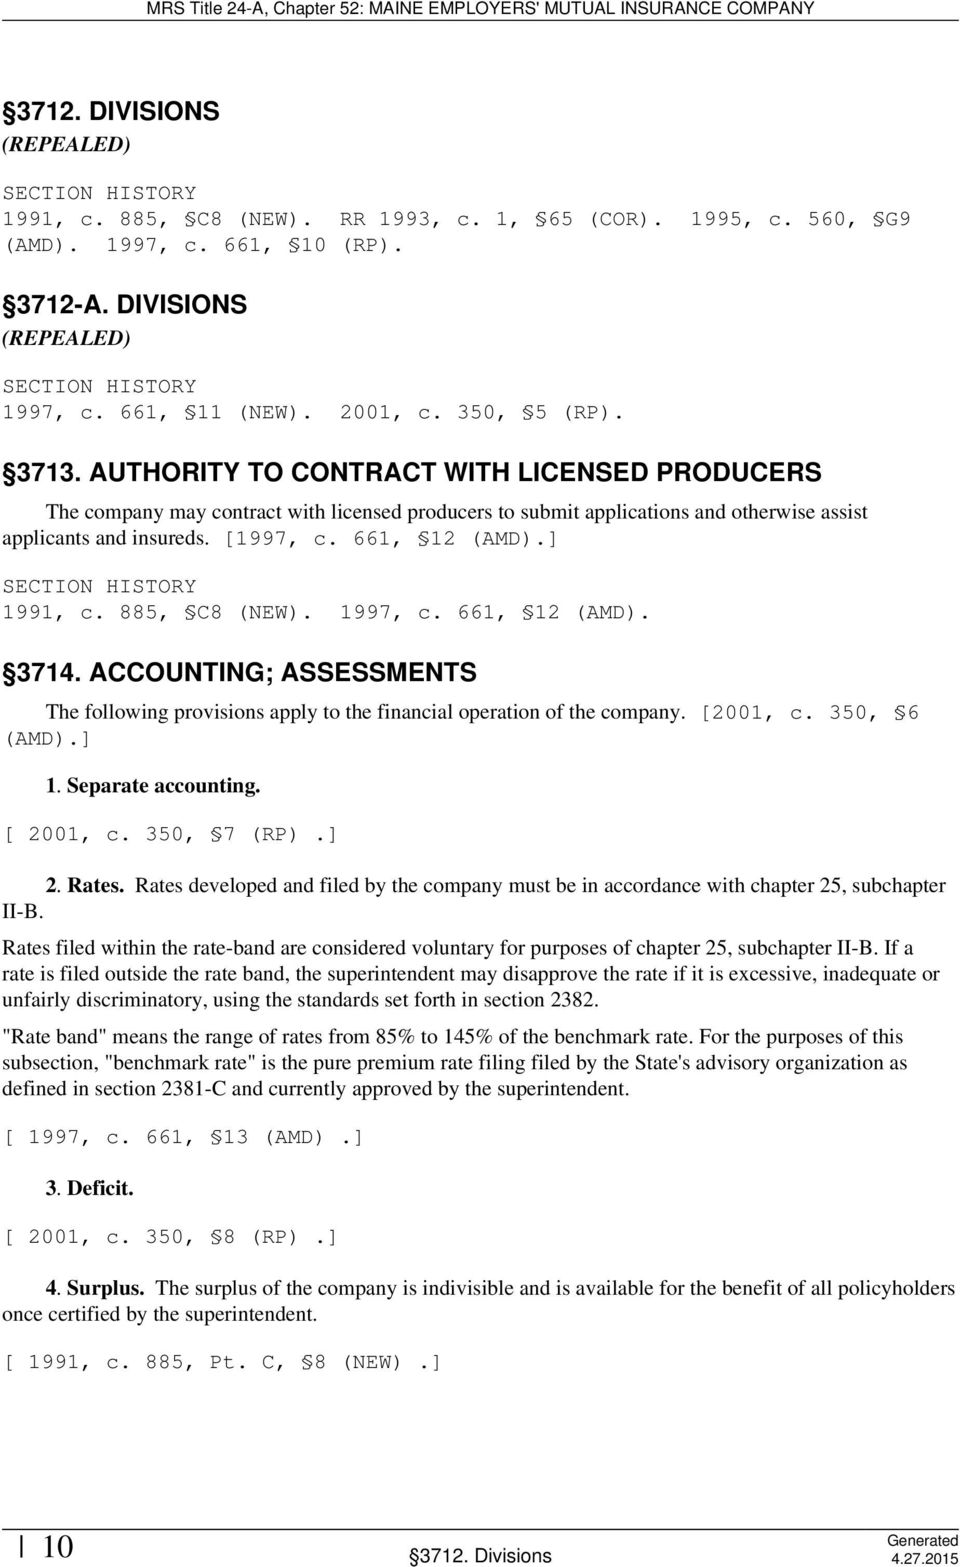 ] 1991, c. 885, C8 (NEW). 1997, c. 661, 12 (AMD). 3714. ACCOUNTING; ASSESSMENTS The following provisions apply to the financial operation of the company. [2001, c. 350, 6 (AMD).] 1. Separate accounting.